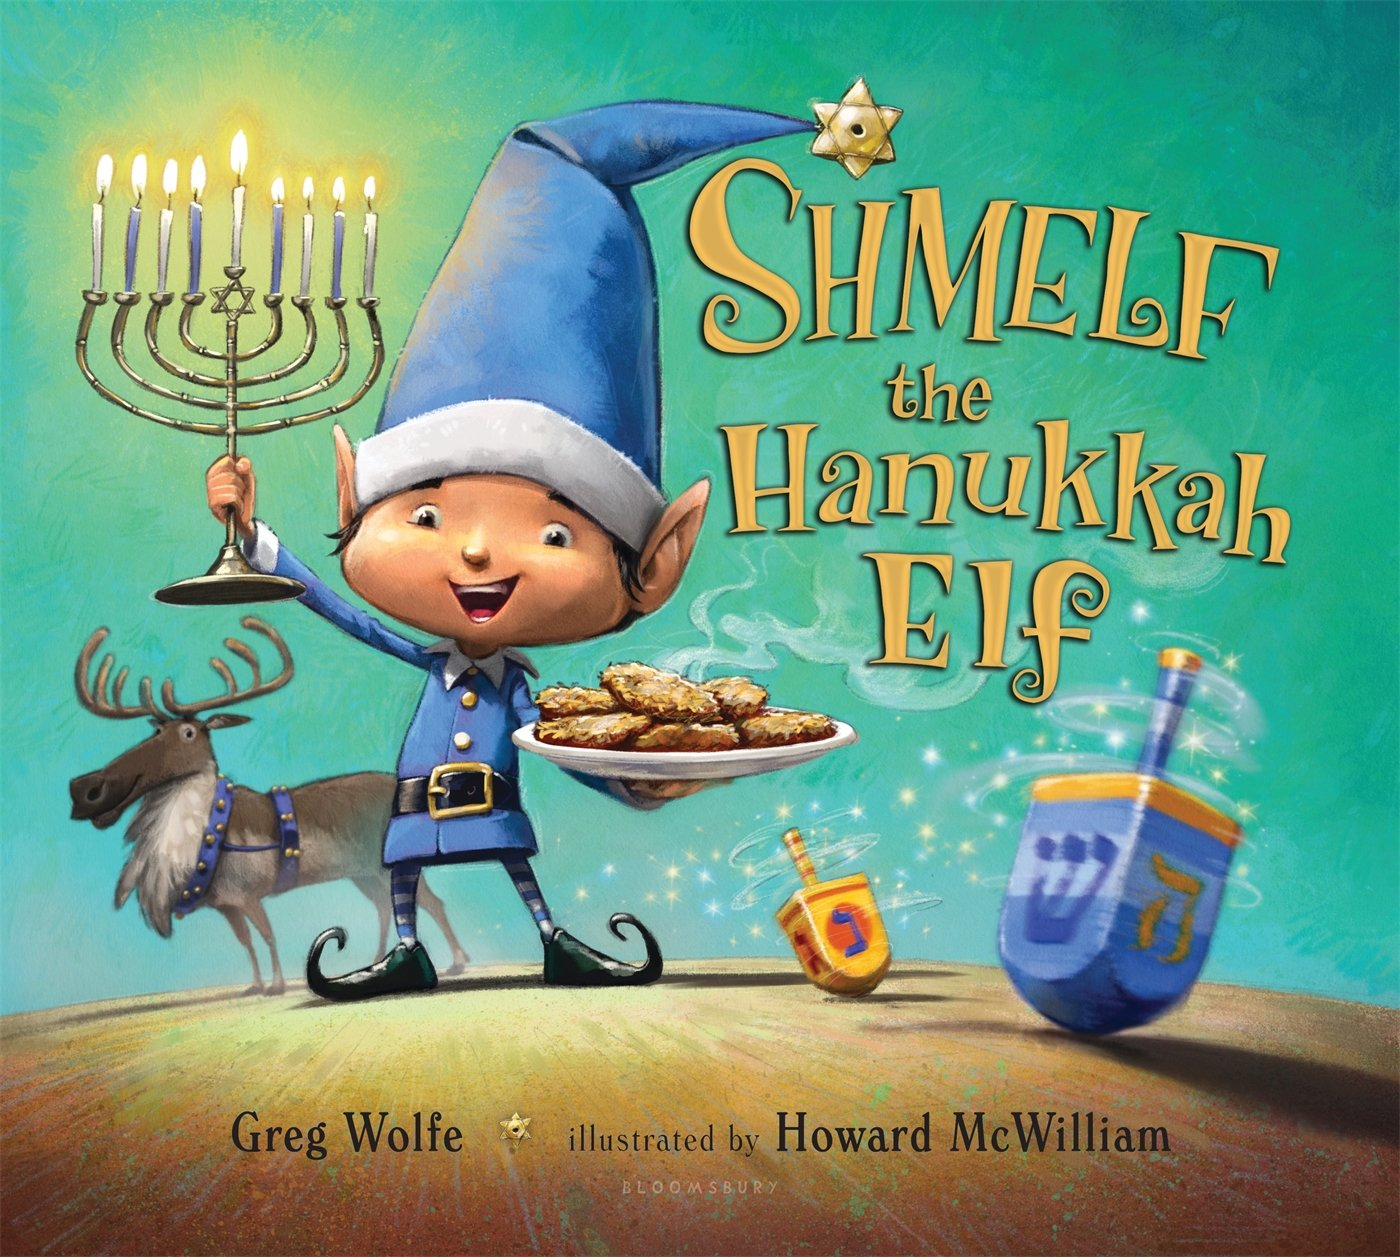 Shmelf The Hanukkah Elf Greg Wolfe Howard Mcwilliam 9781619635210